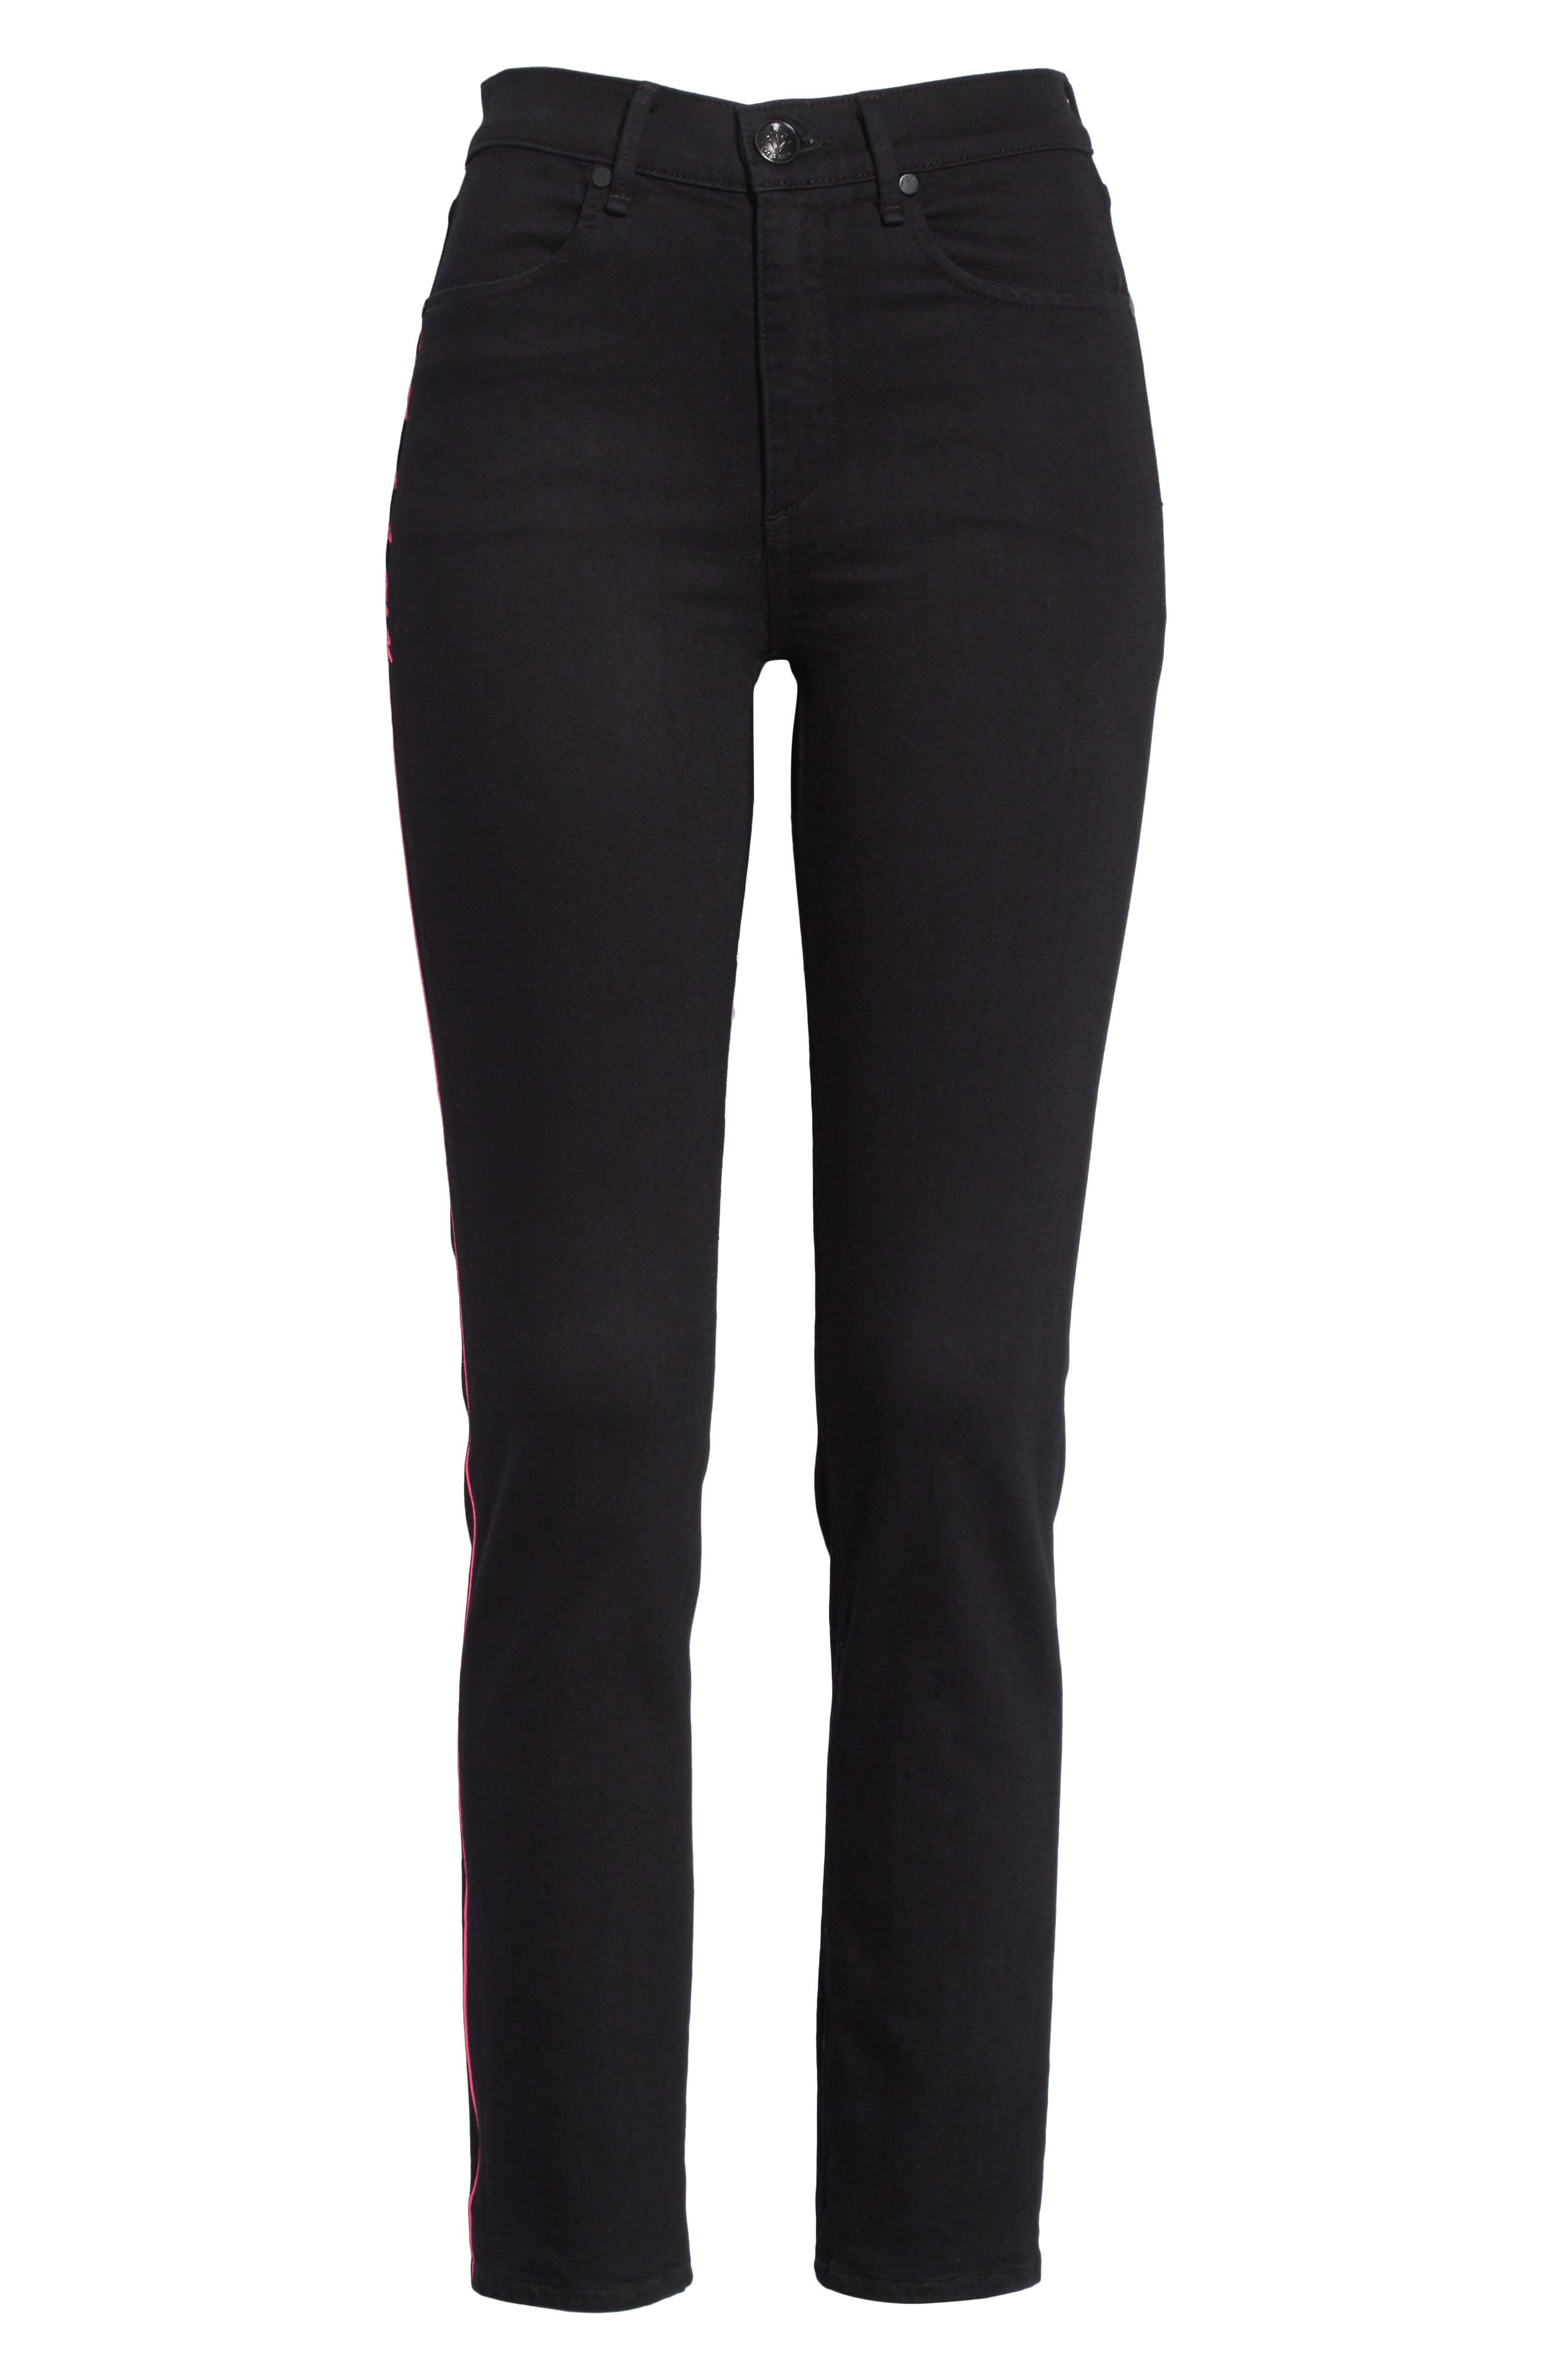 Ash High Waist Skinny Jeans,                             Alternate thumbnail 6, color,